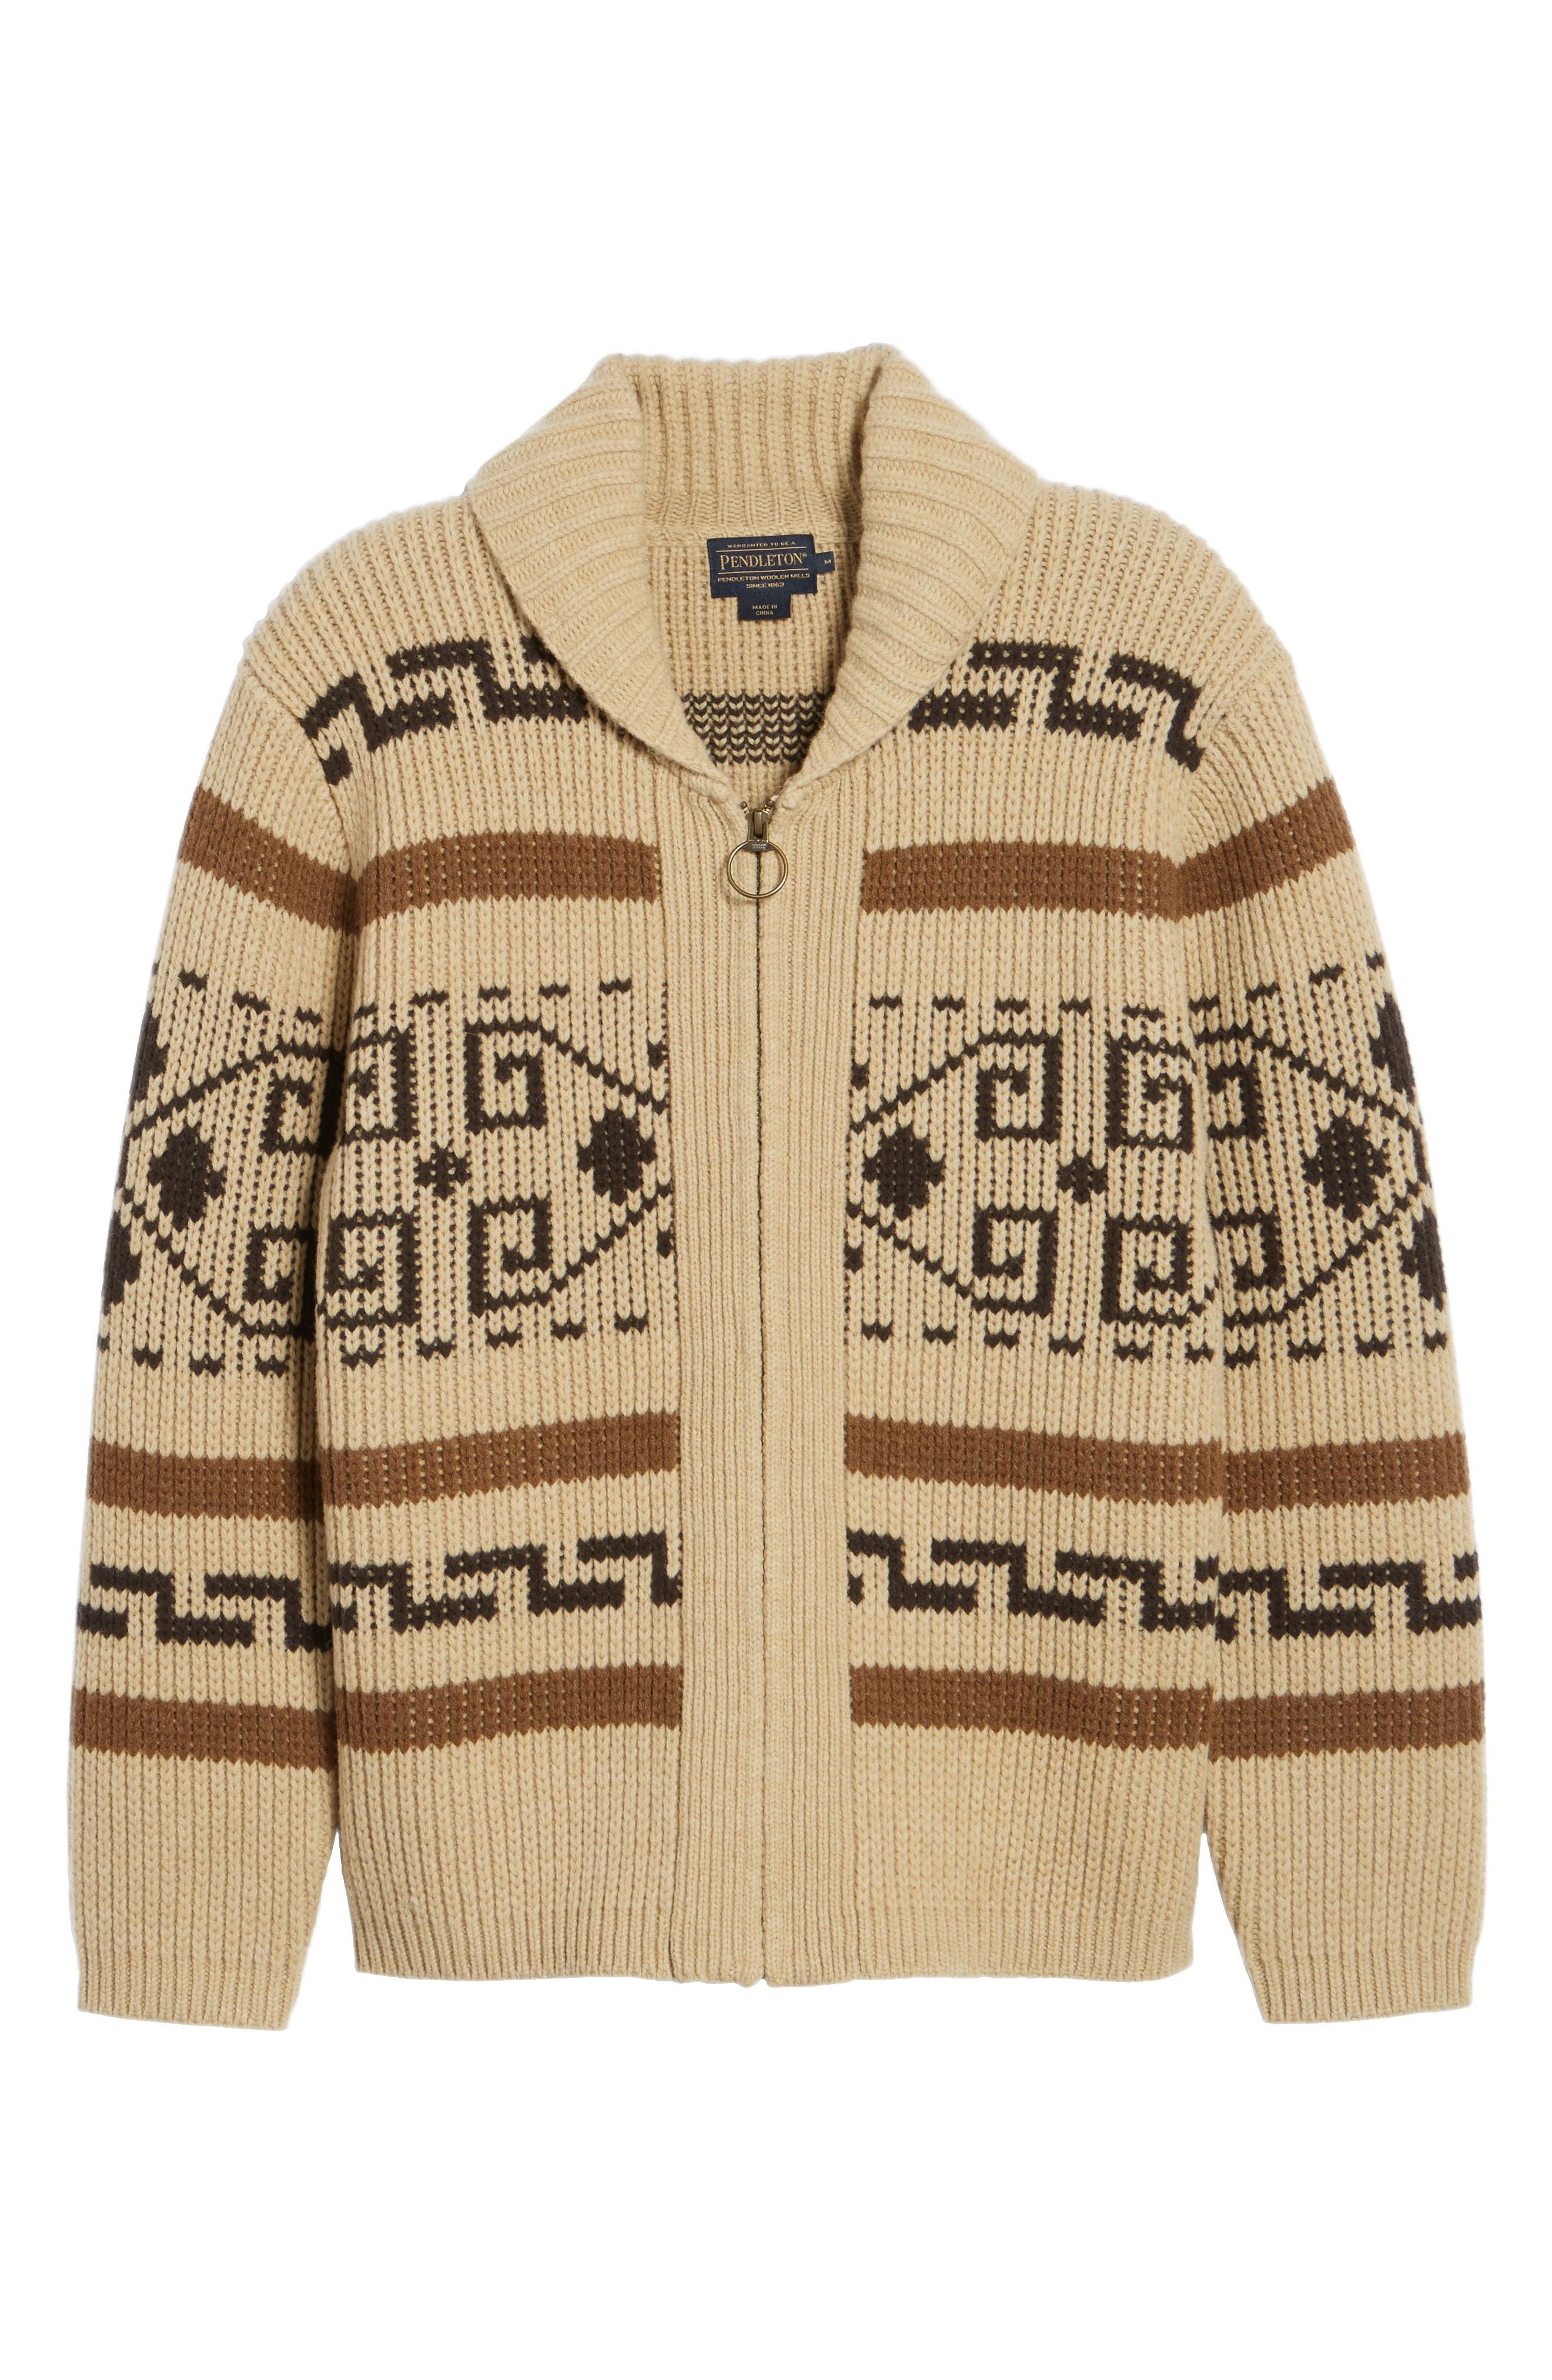 Original Westerly Sweater,                             Alternate thumbnail 6, color,                             260